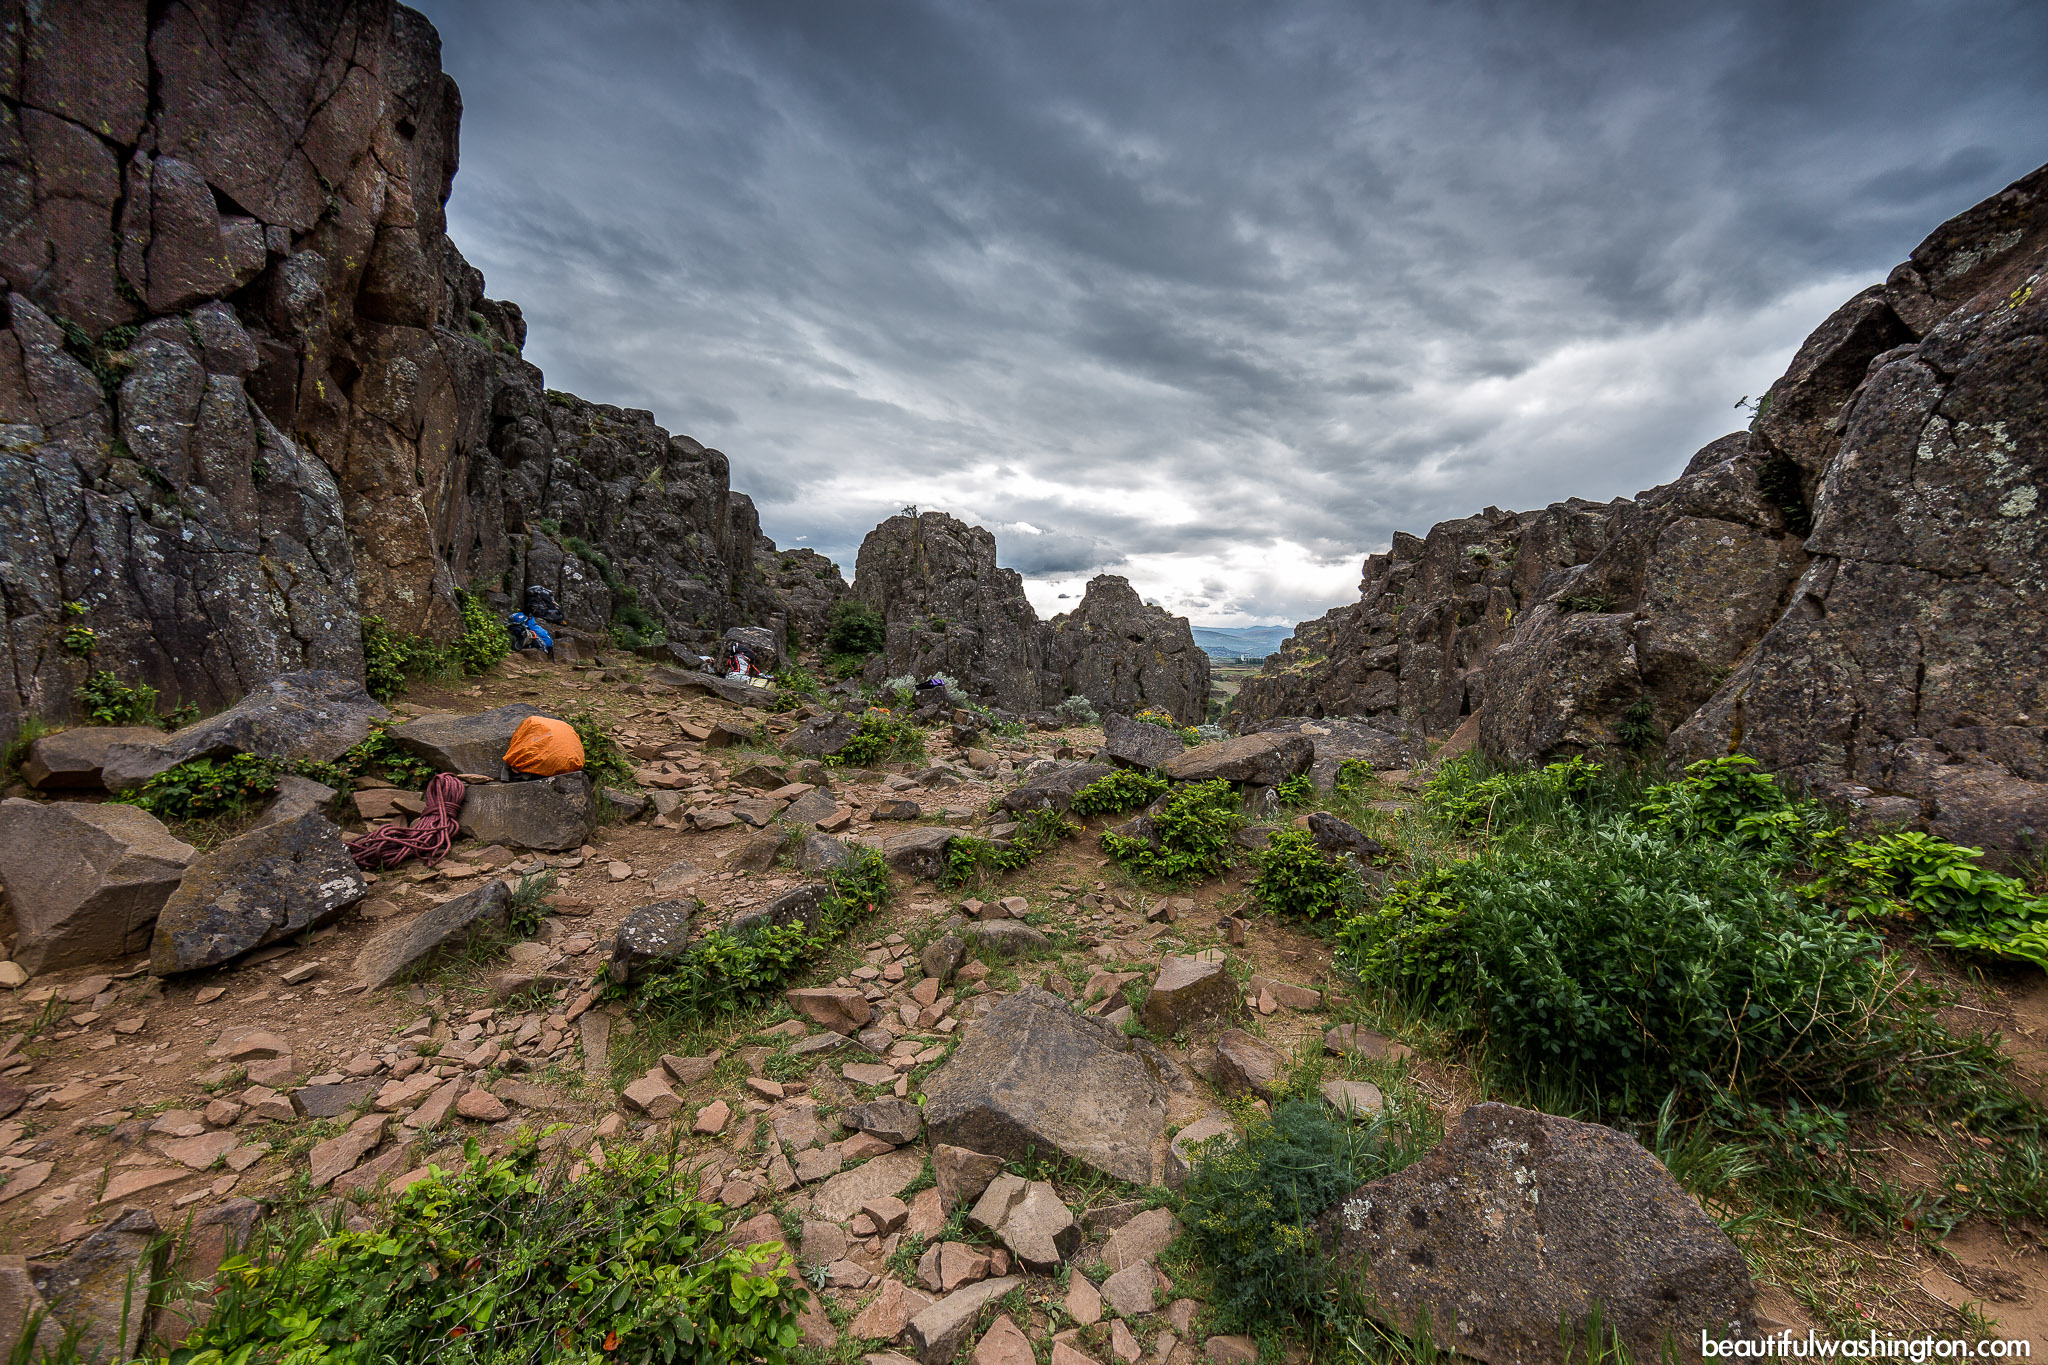 Photo from Eastern Washington, Dallesport, Horsethief Butte Trail